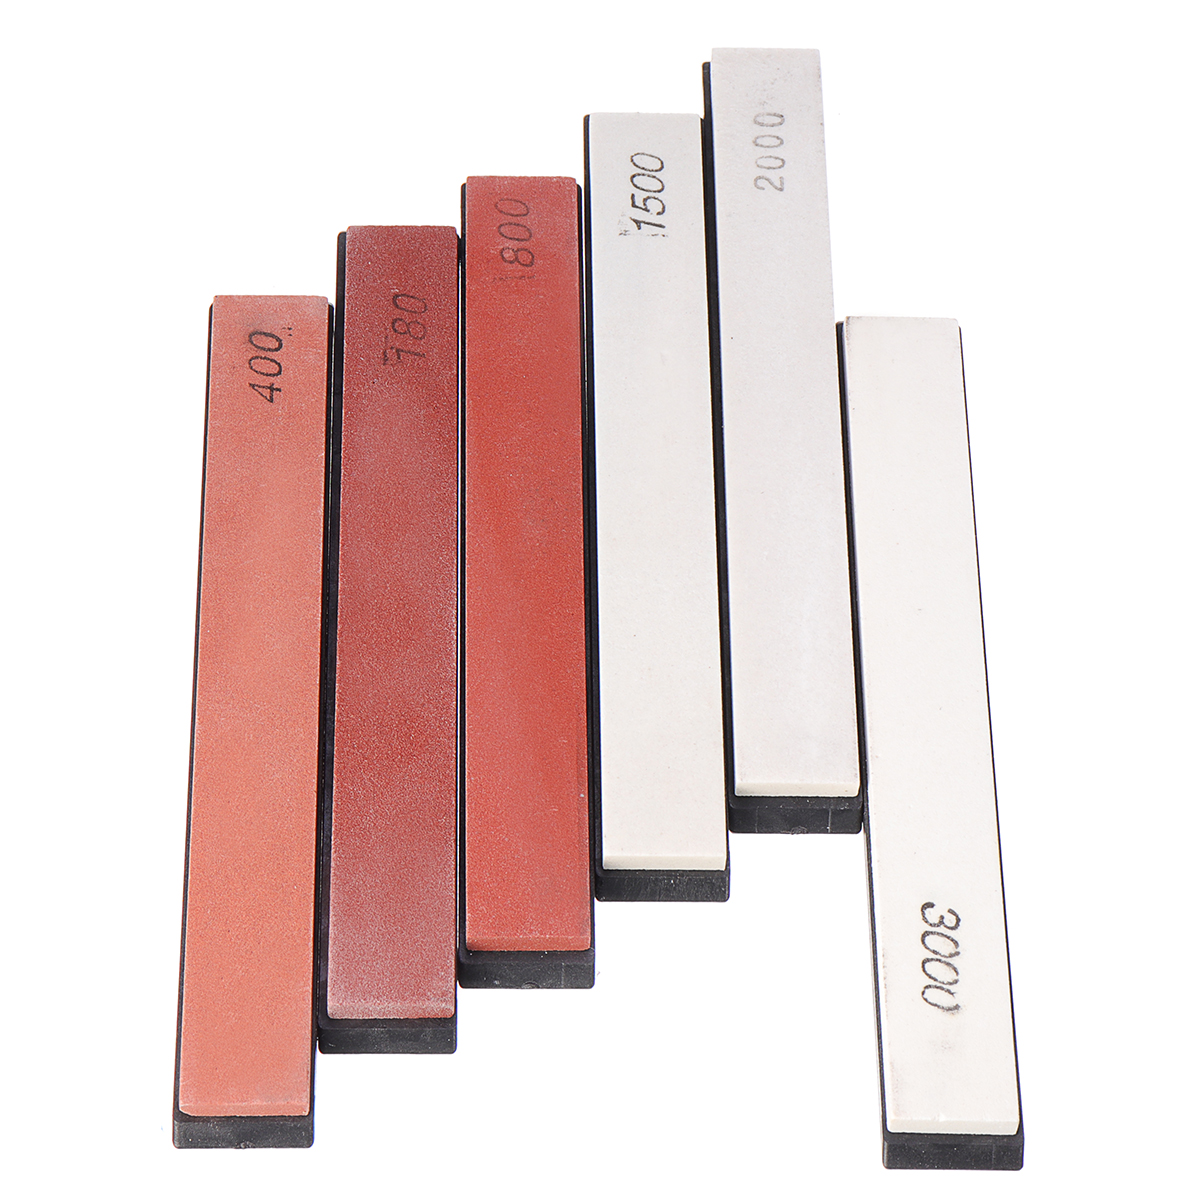 6 Pcs Sharpening Stone Set Whetstone Set Oilstone Grindstone Polishing Sharpener Sander